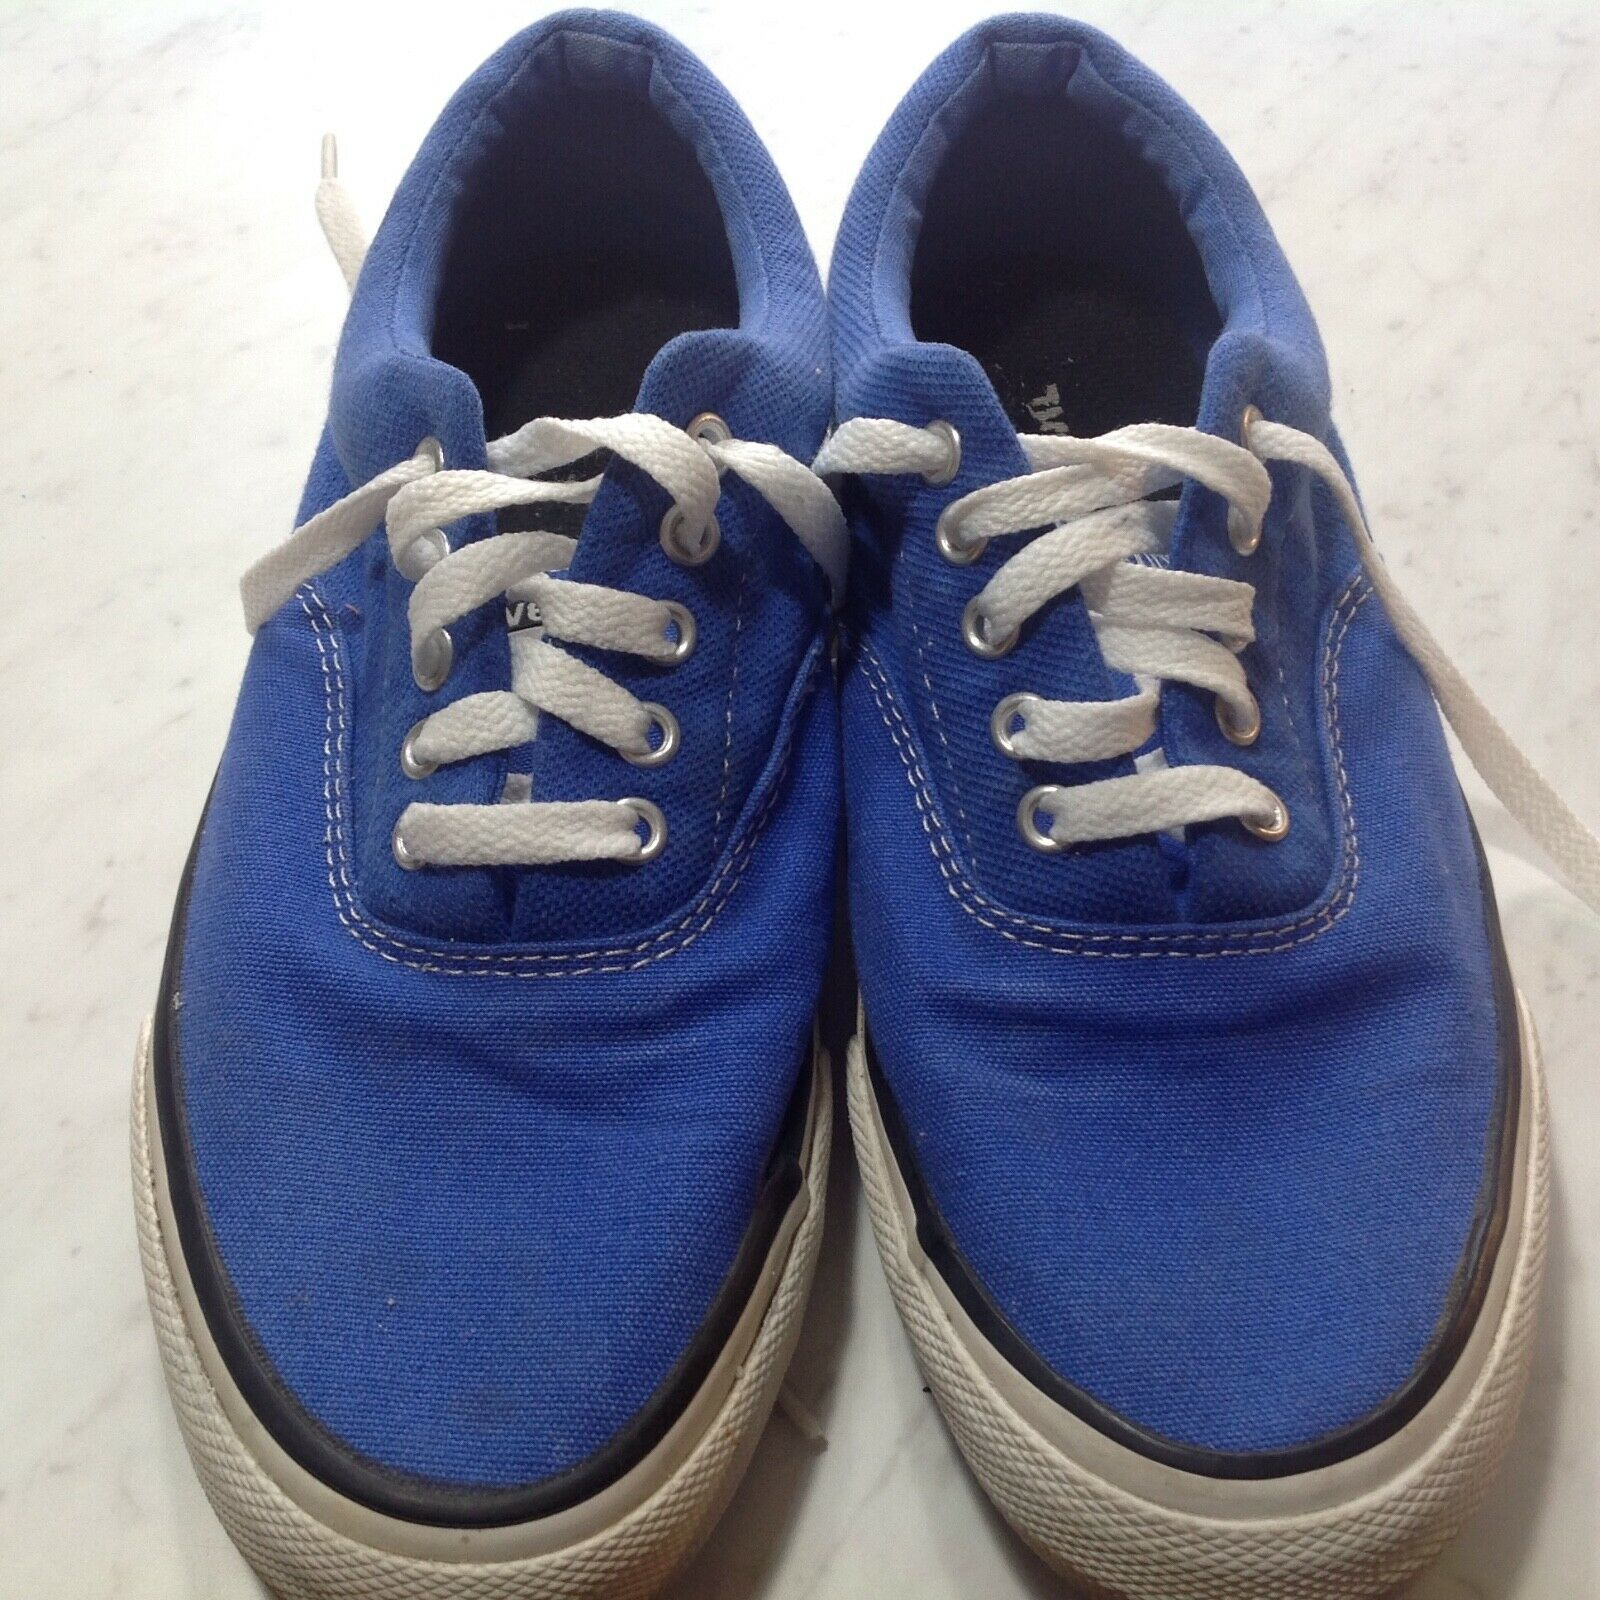 Converse Skid Grip Bleu Toile Chaussures Hommes Taille 8 Femme 9.5